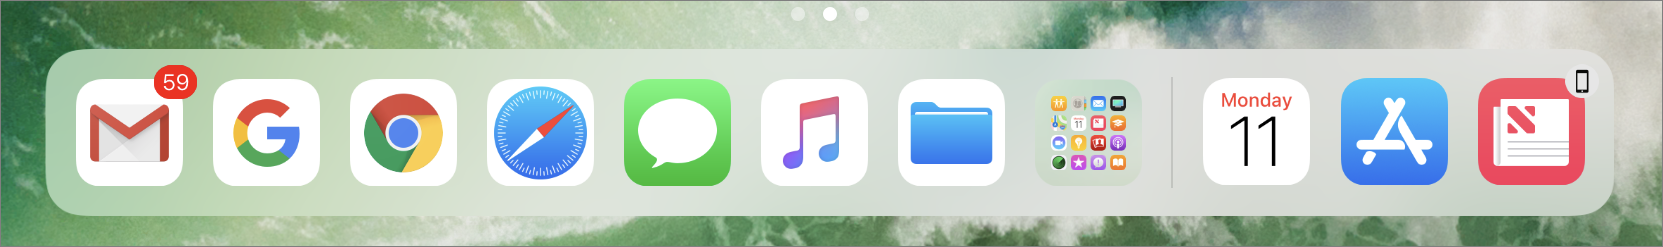 iOS11-iPad-Dock.png